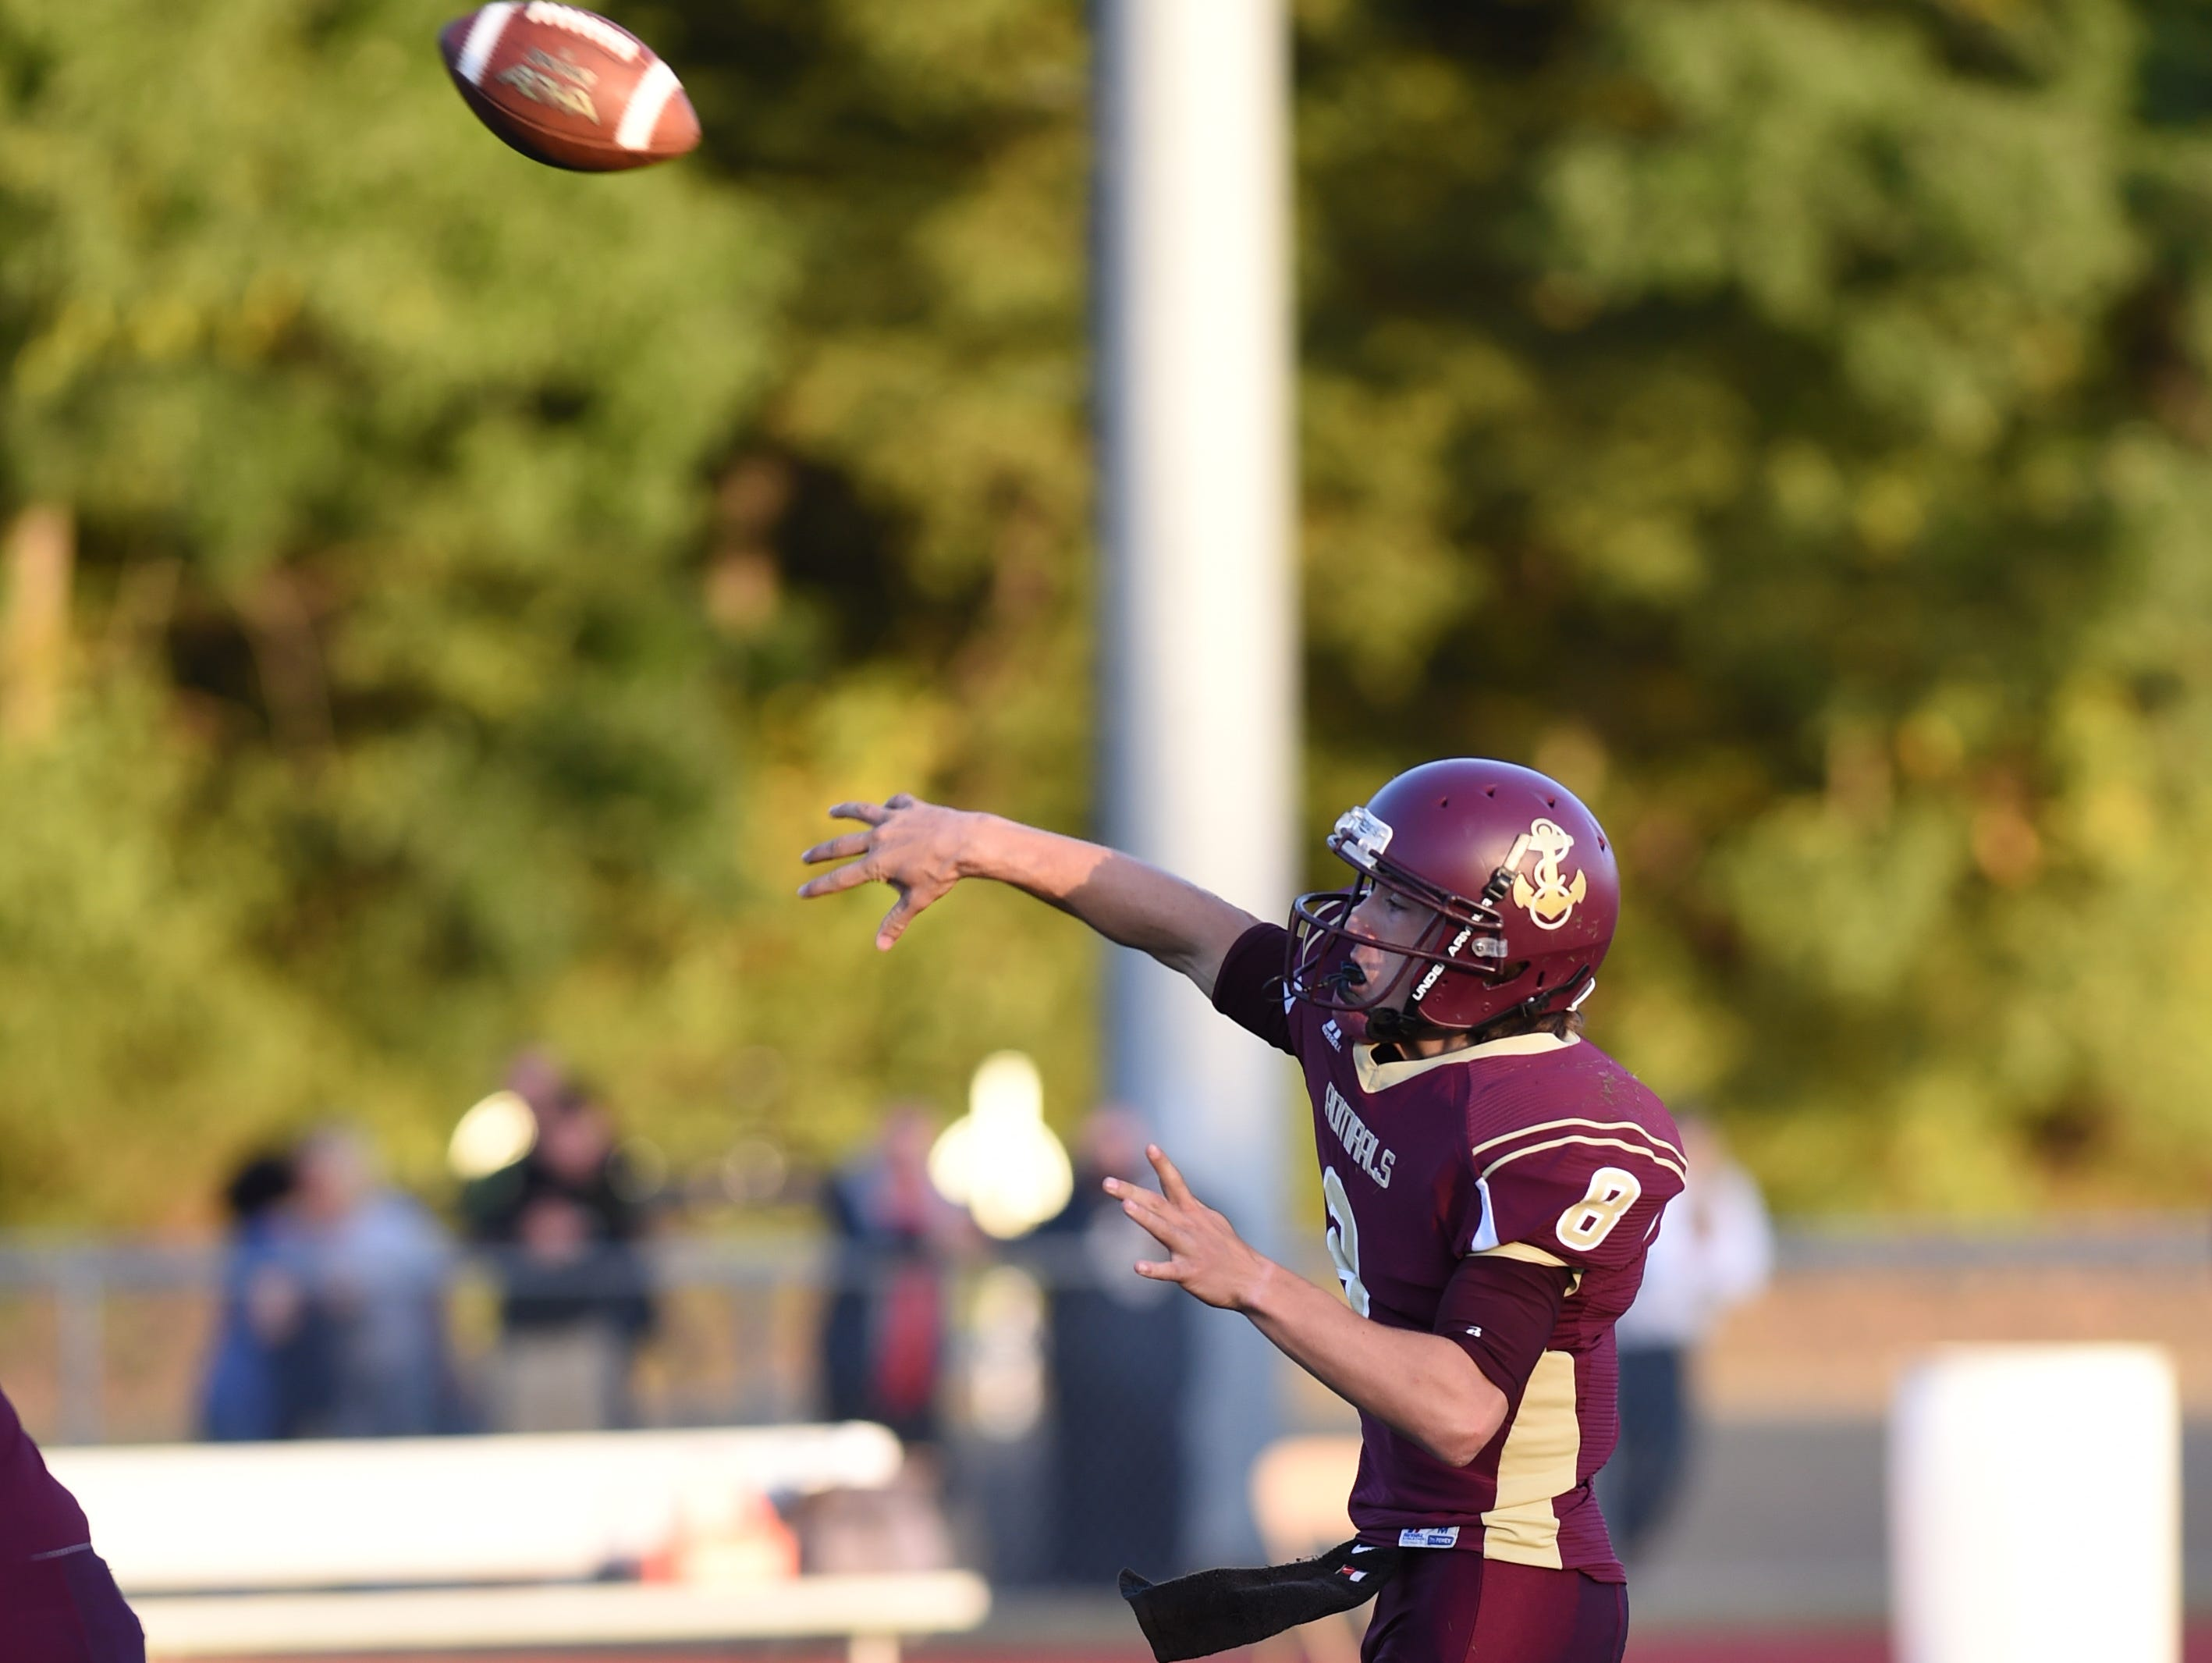 Arlington's Austin Heck passes the ball during Friday's home game versus John Jay.